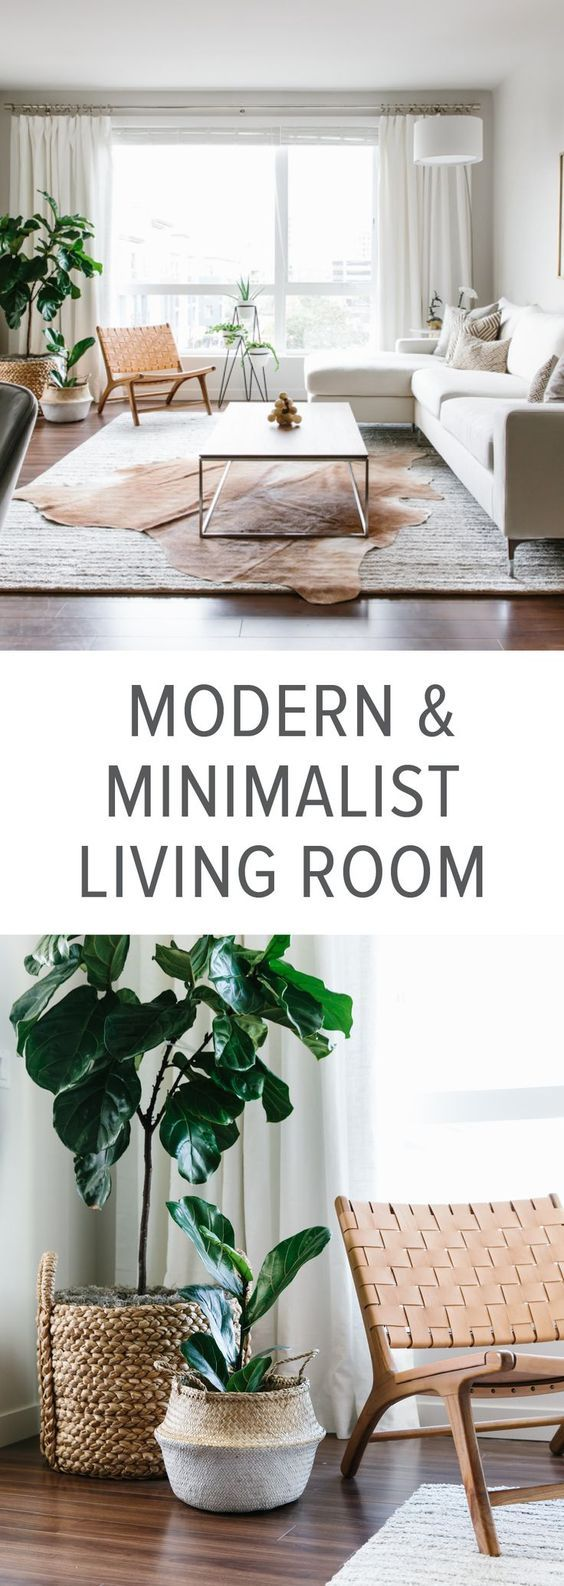 Designing my Modern and Minimalist Living Room with Havenly ...